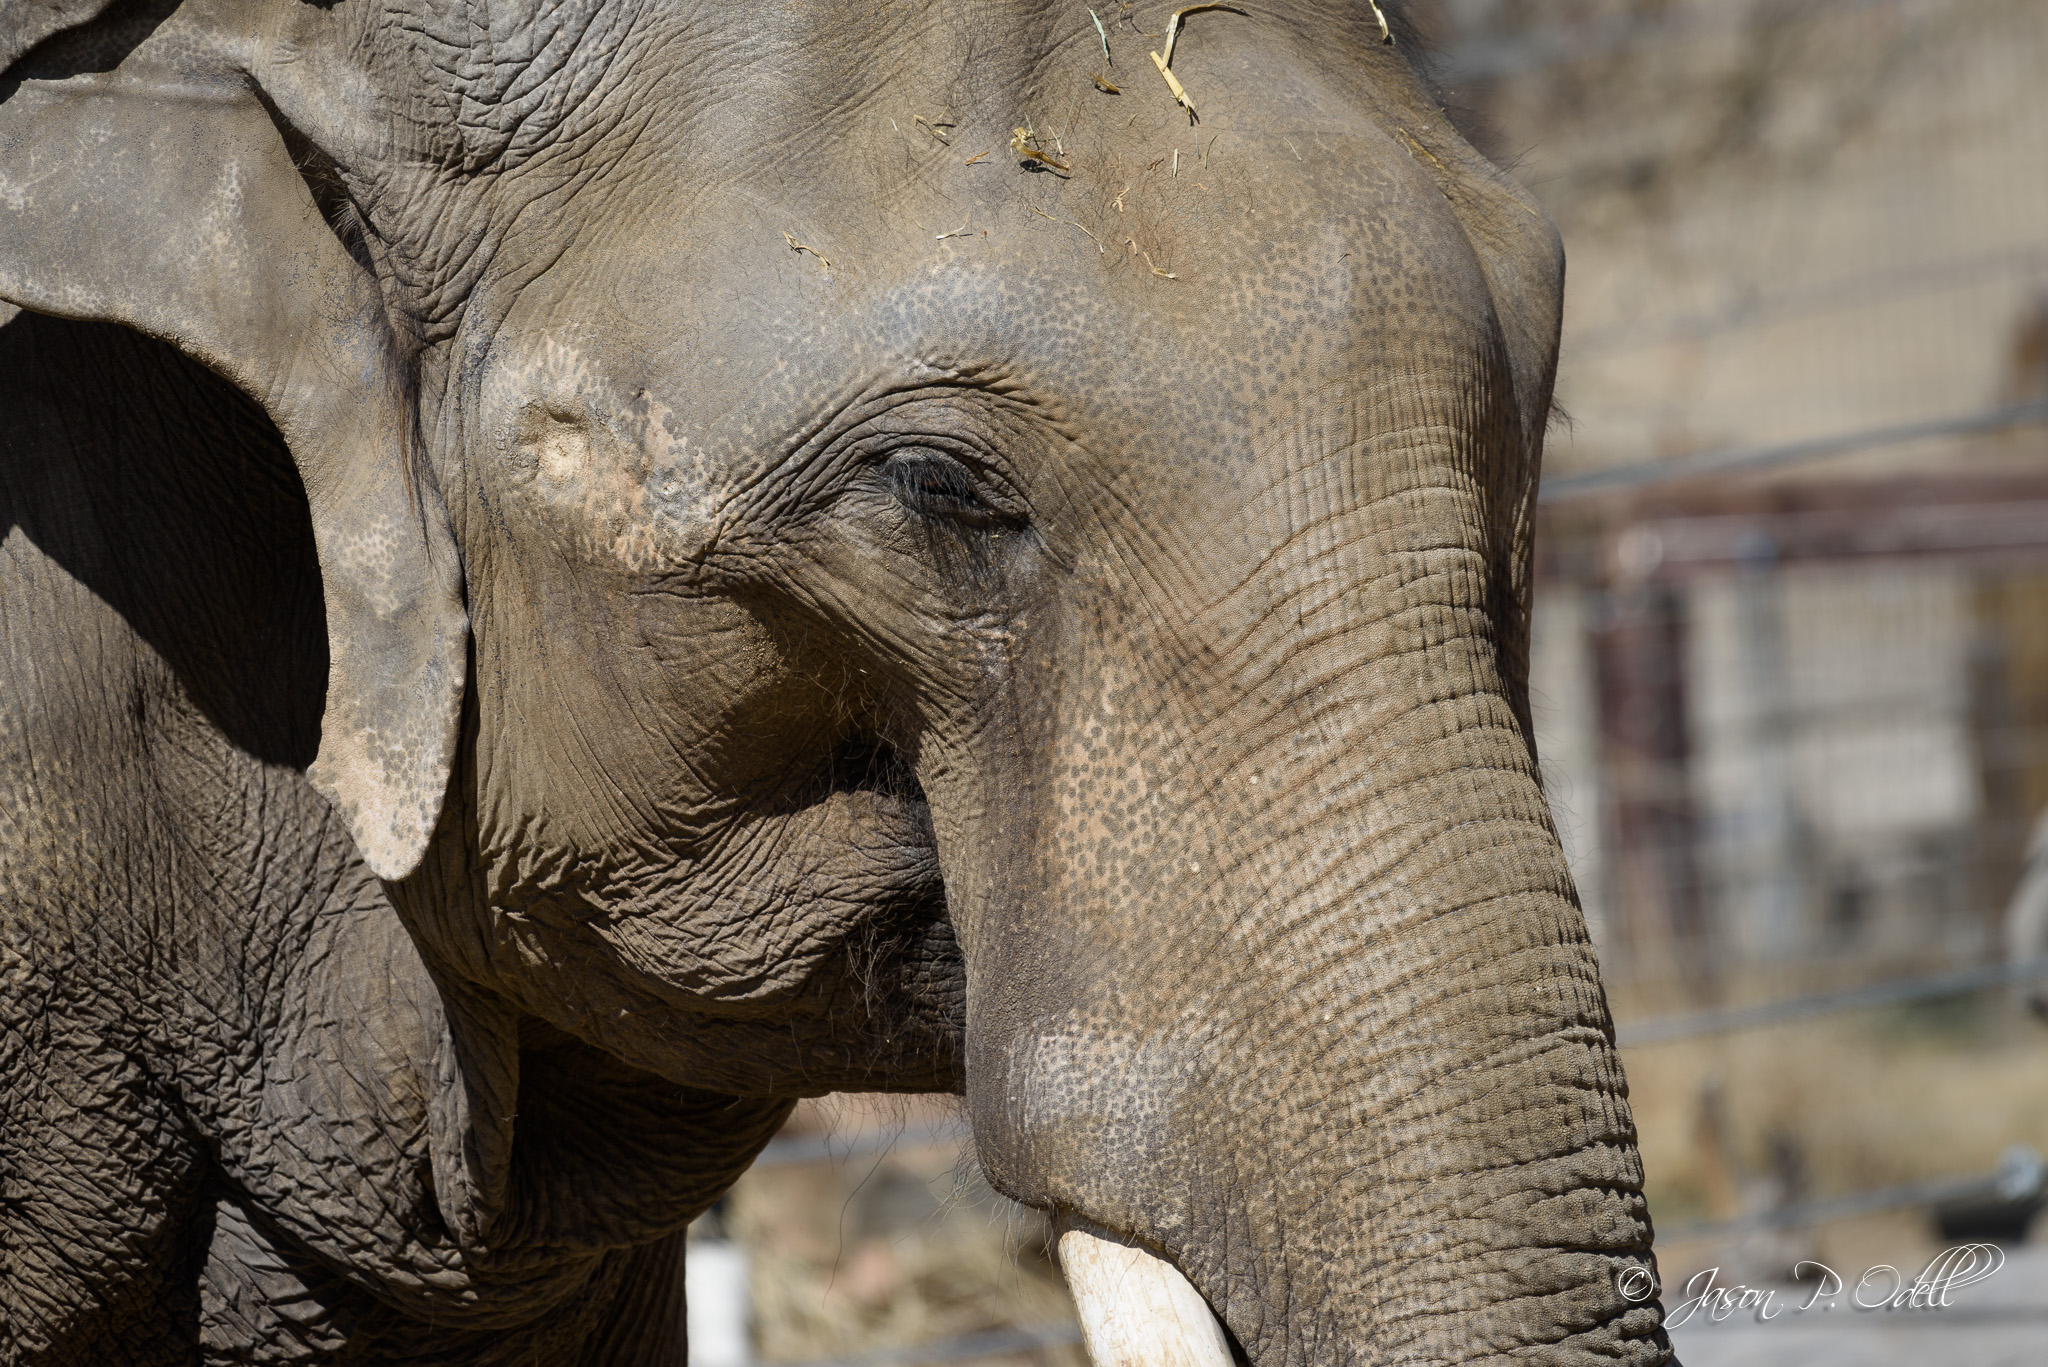 Asian elephant at the Denver Zoo. Nikon D810, 200-500mm VR lens. 1/800s f/6.3 ISO 200.